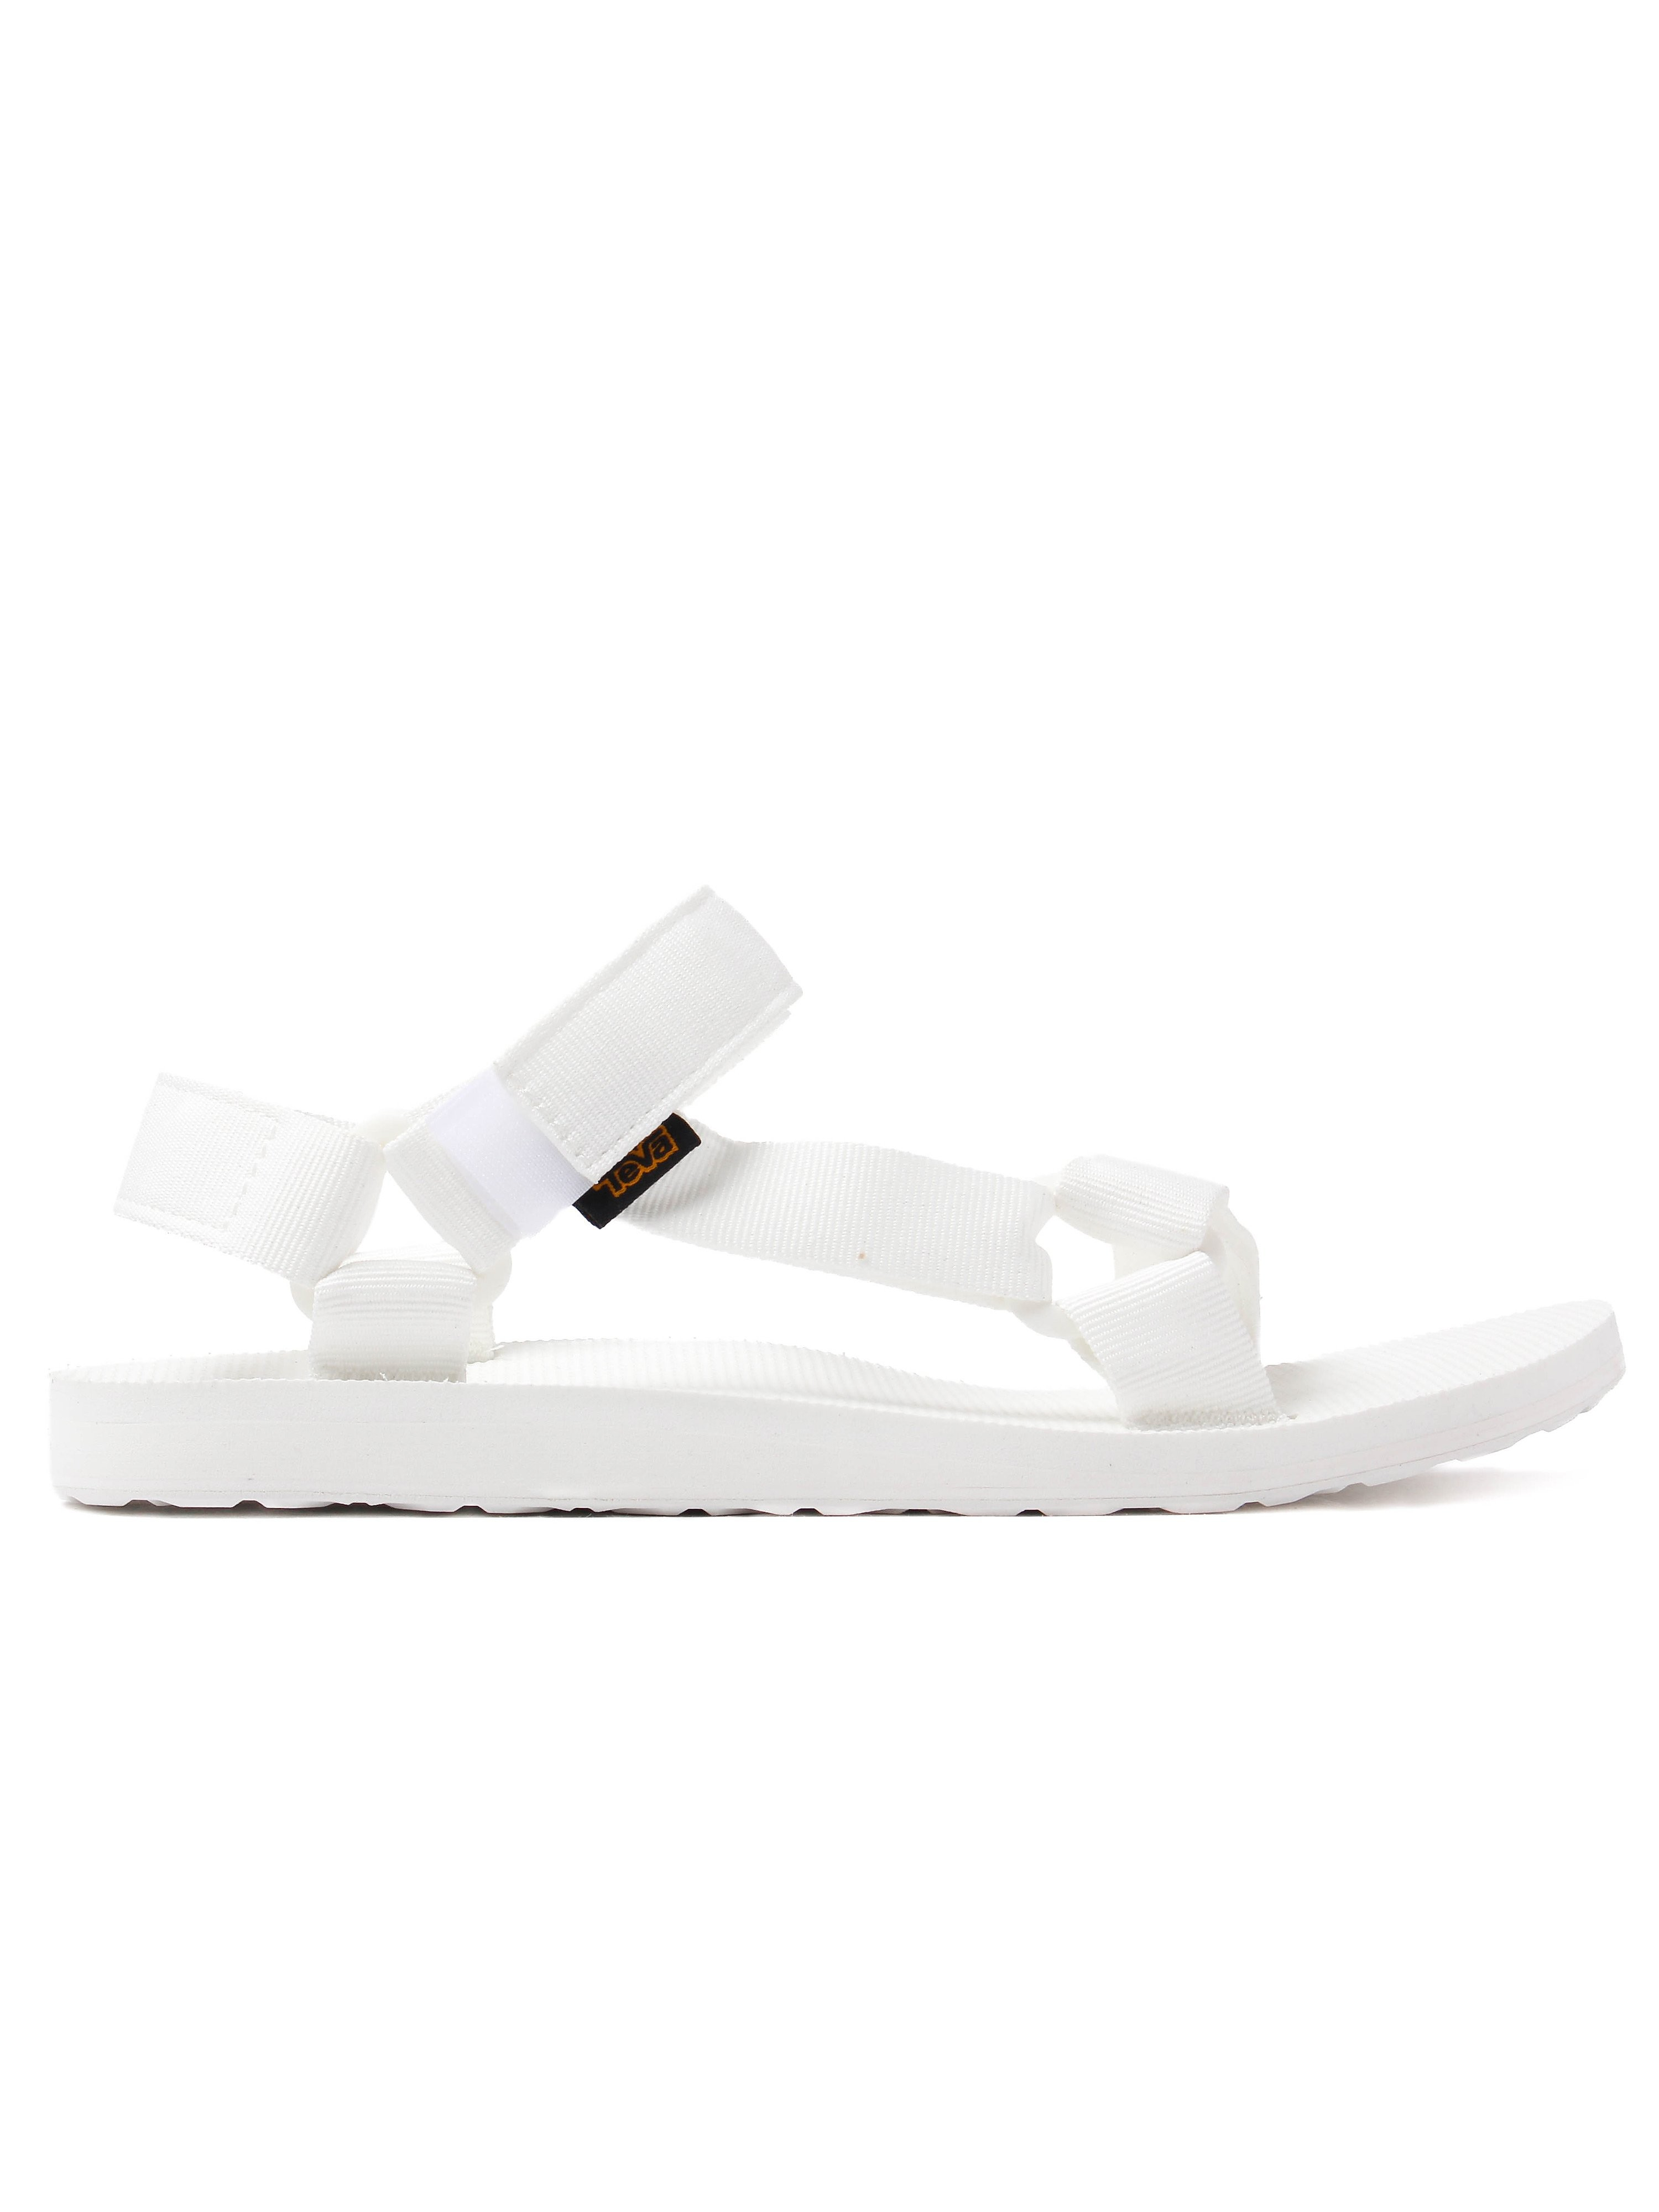 Teva Women's Original Universal Sandals - White